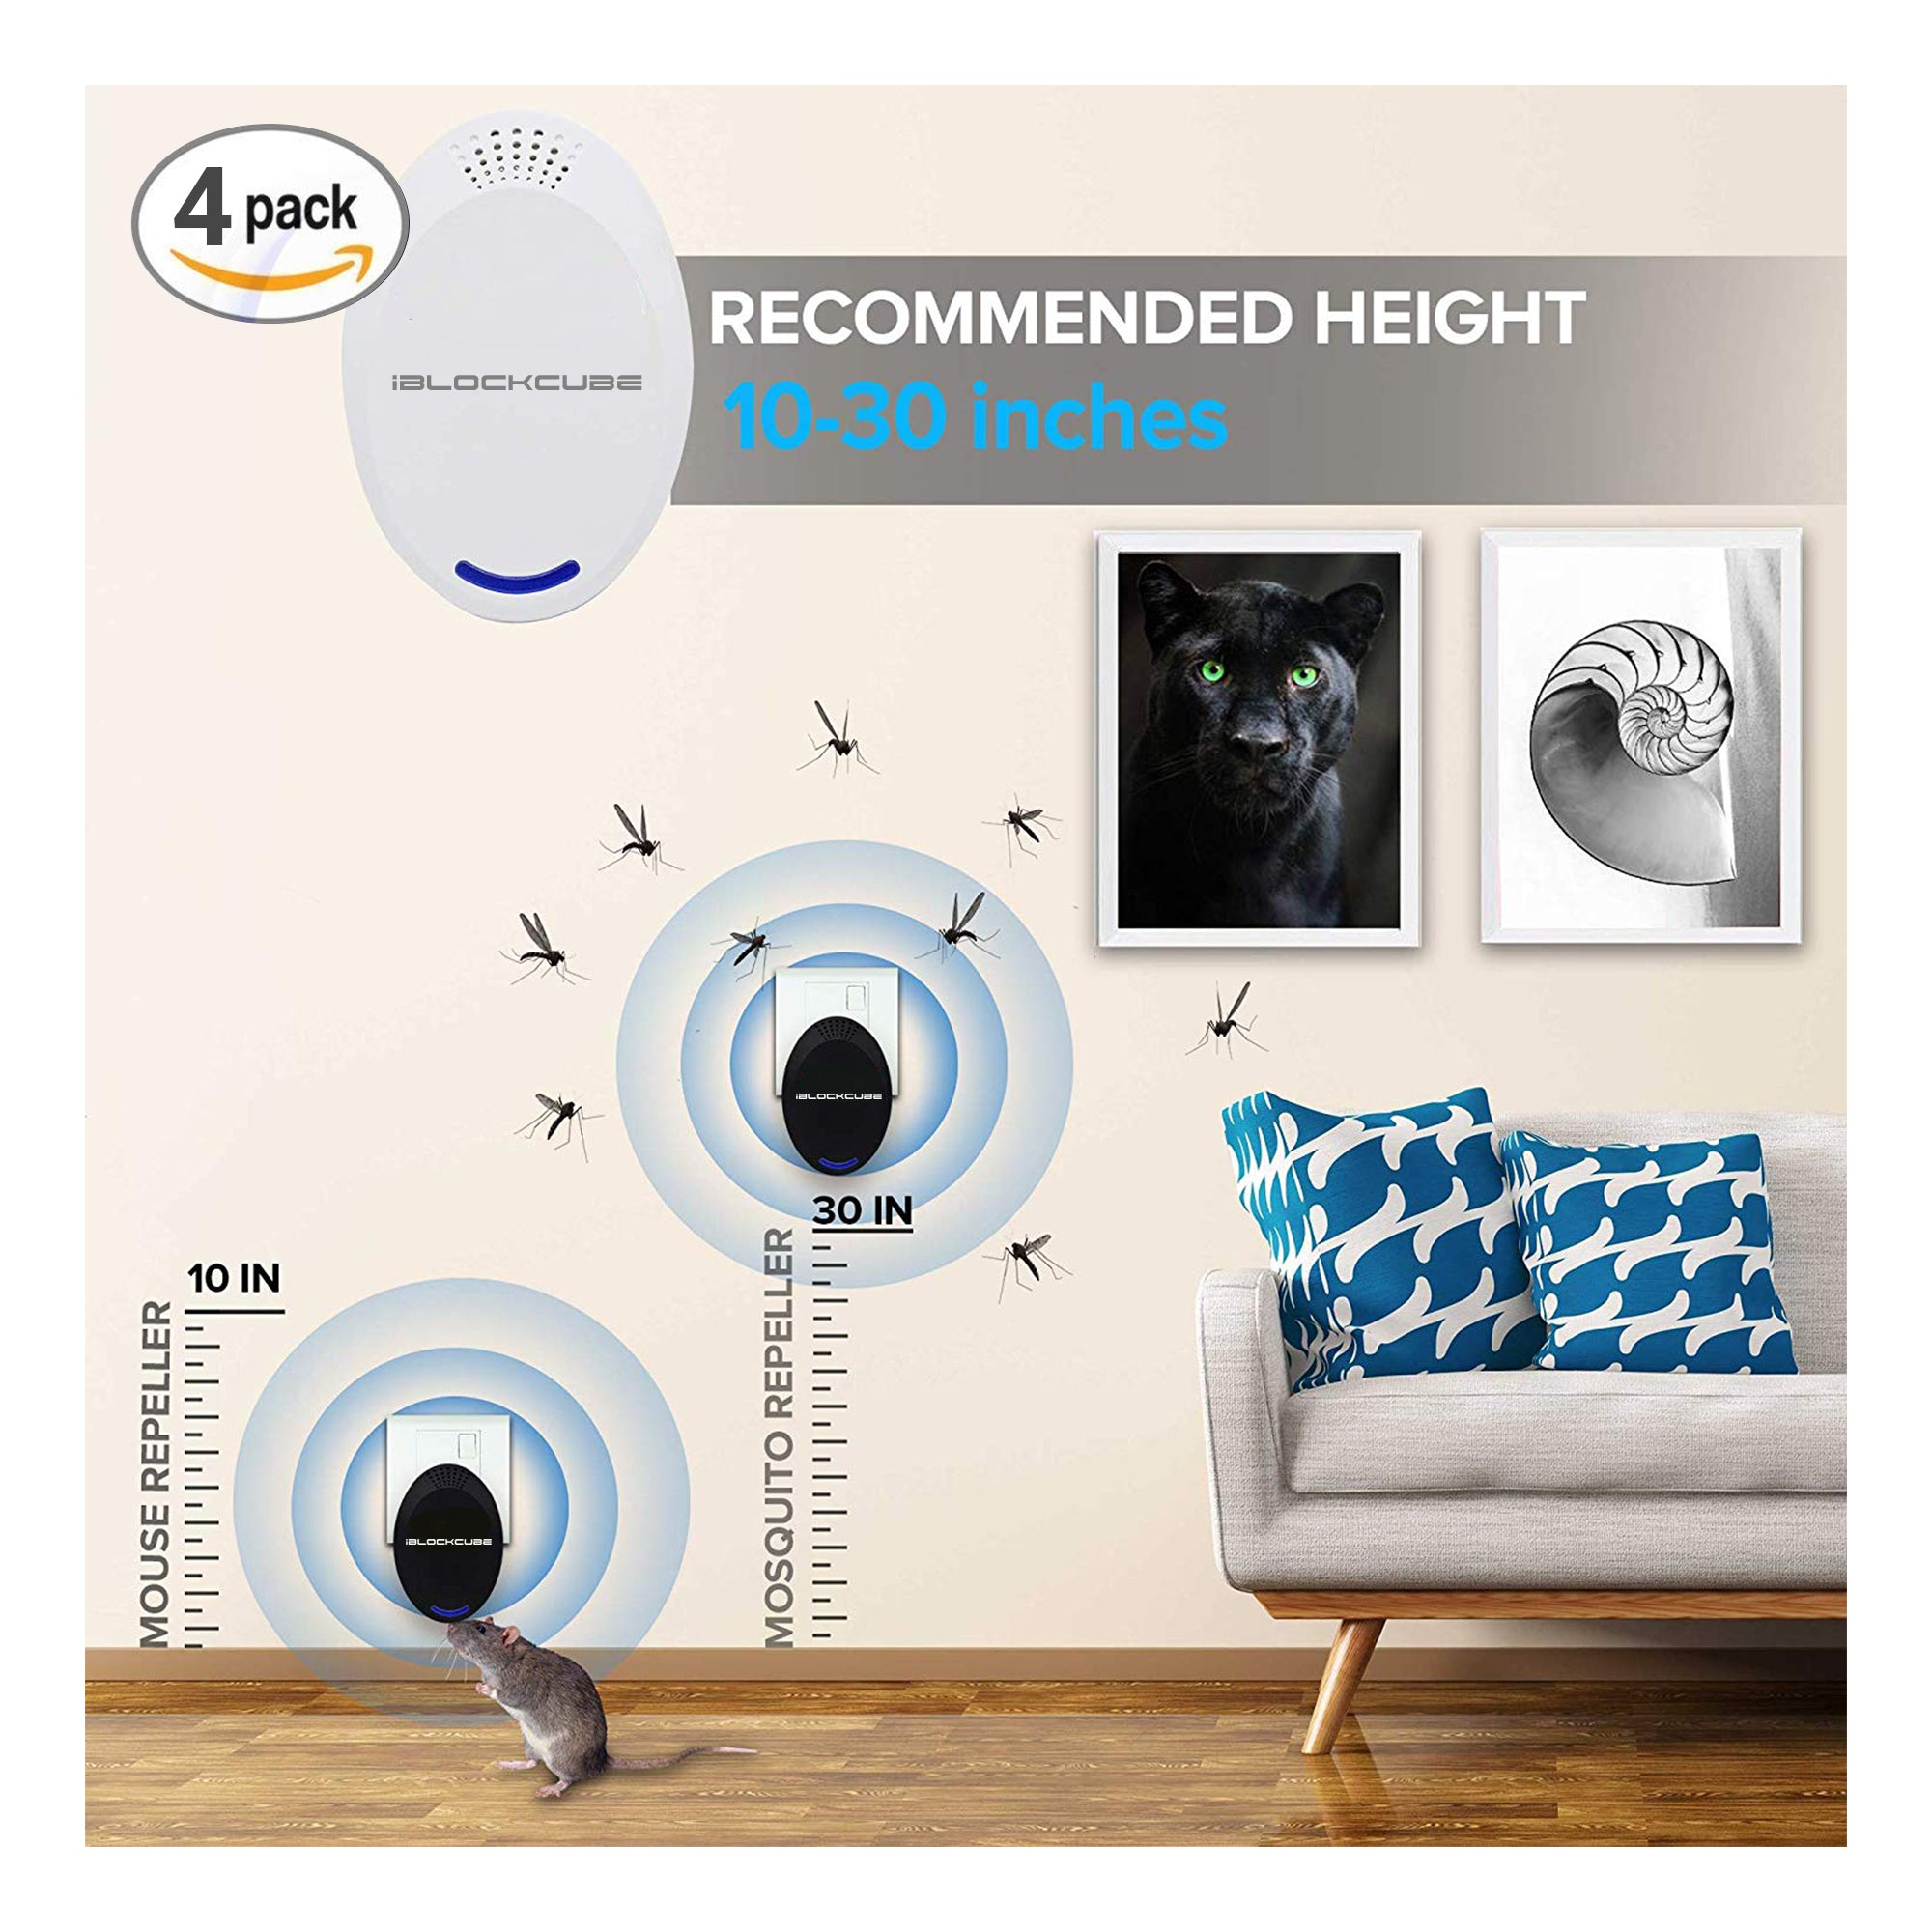 UPR2 - Ultrasonic Pest Repeller